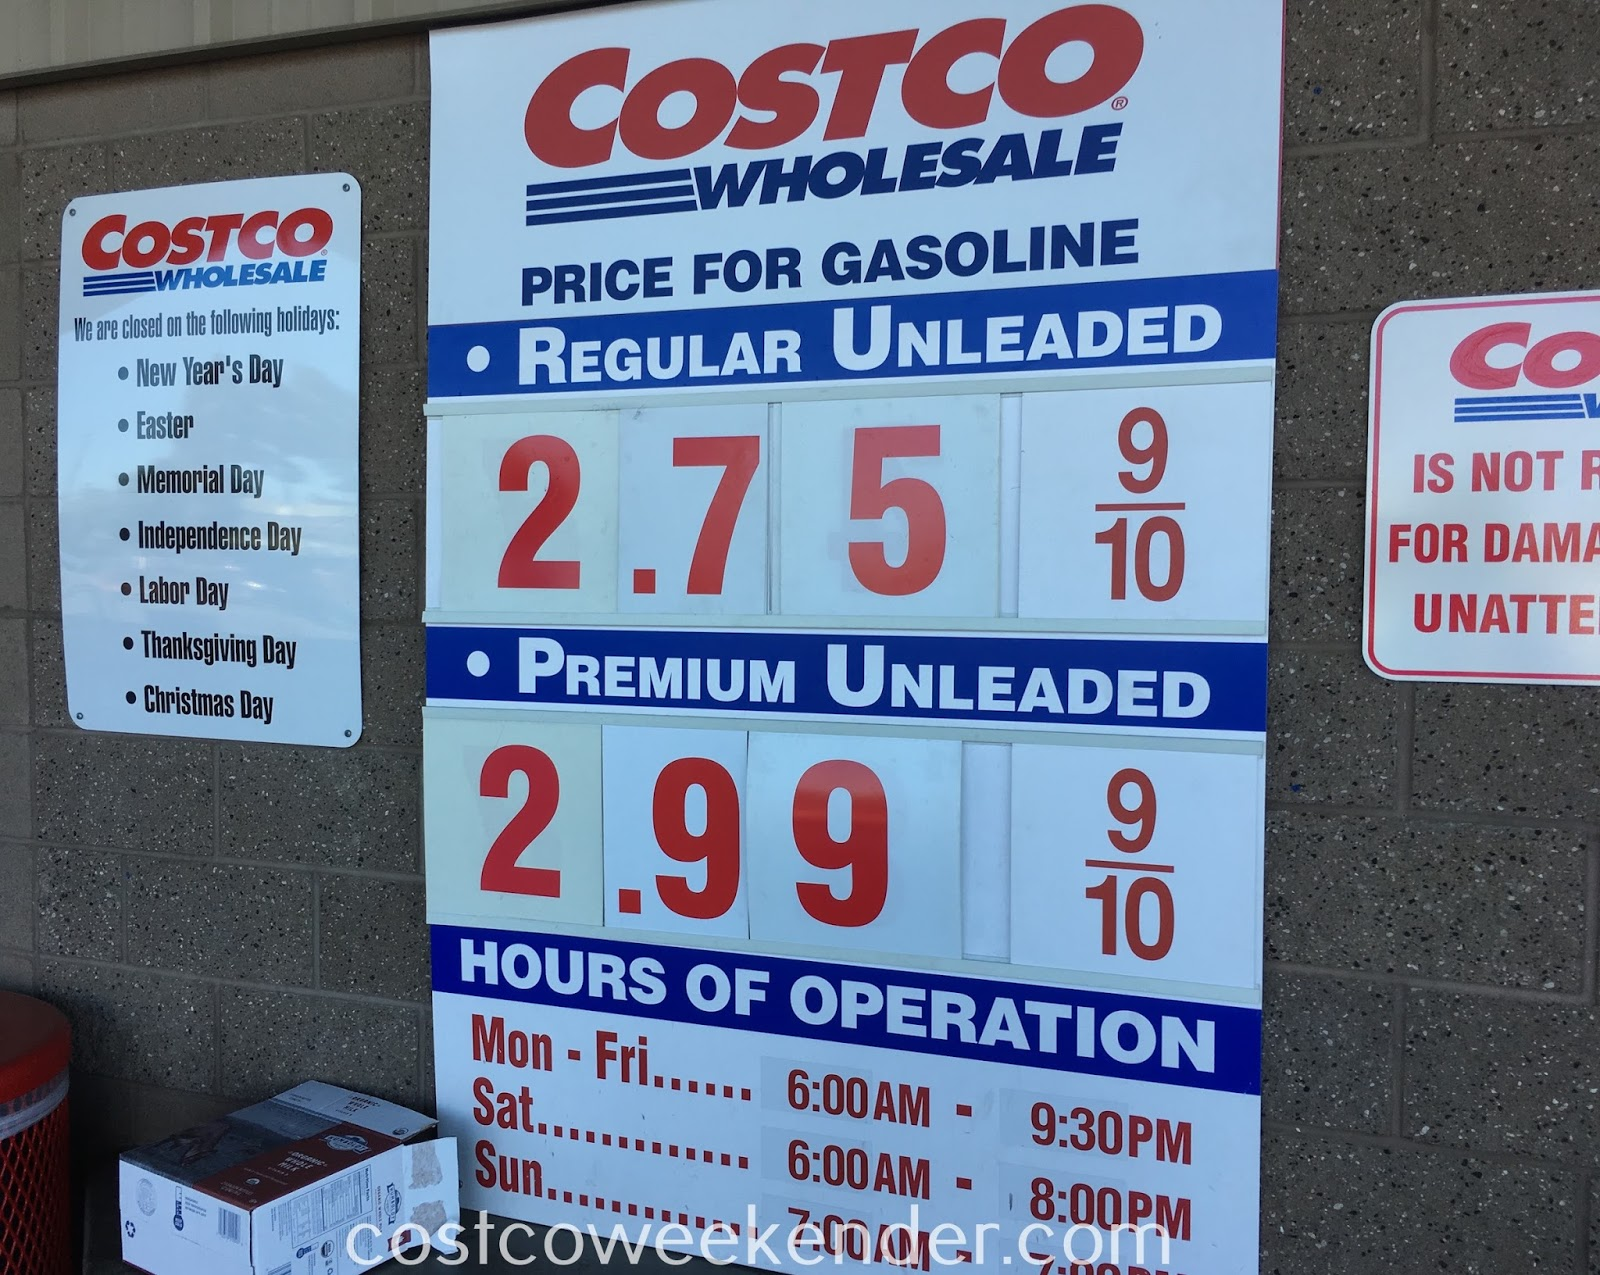 Costco Furnace Filters Price Of Gas What Is The Price Of Gas At Costco